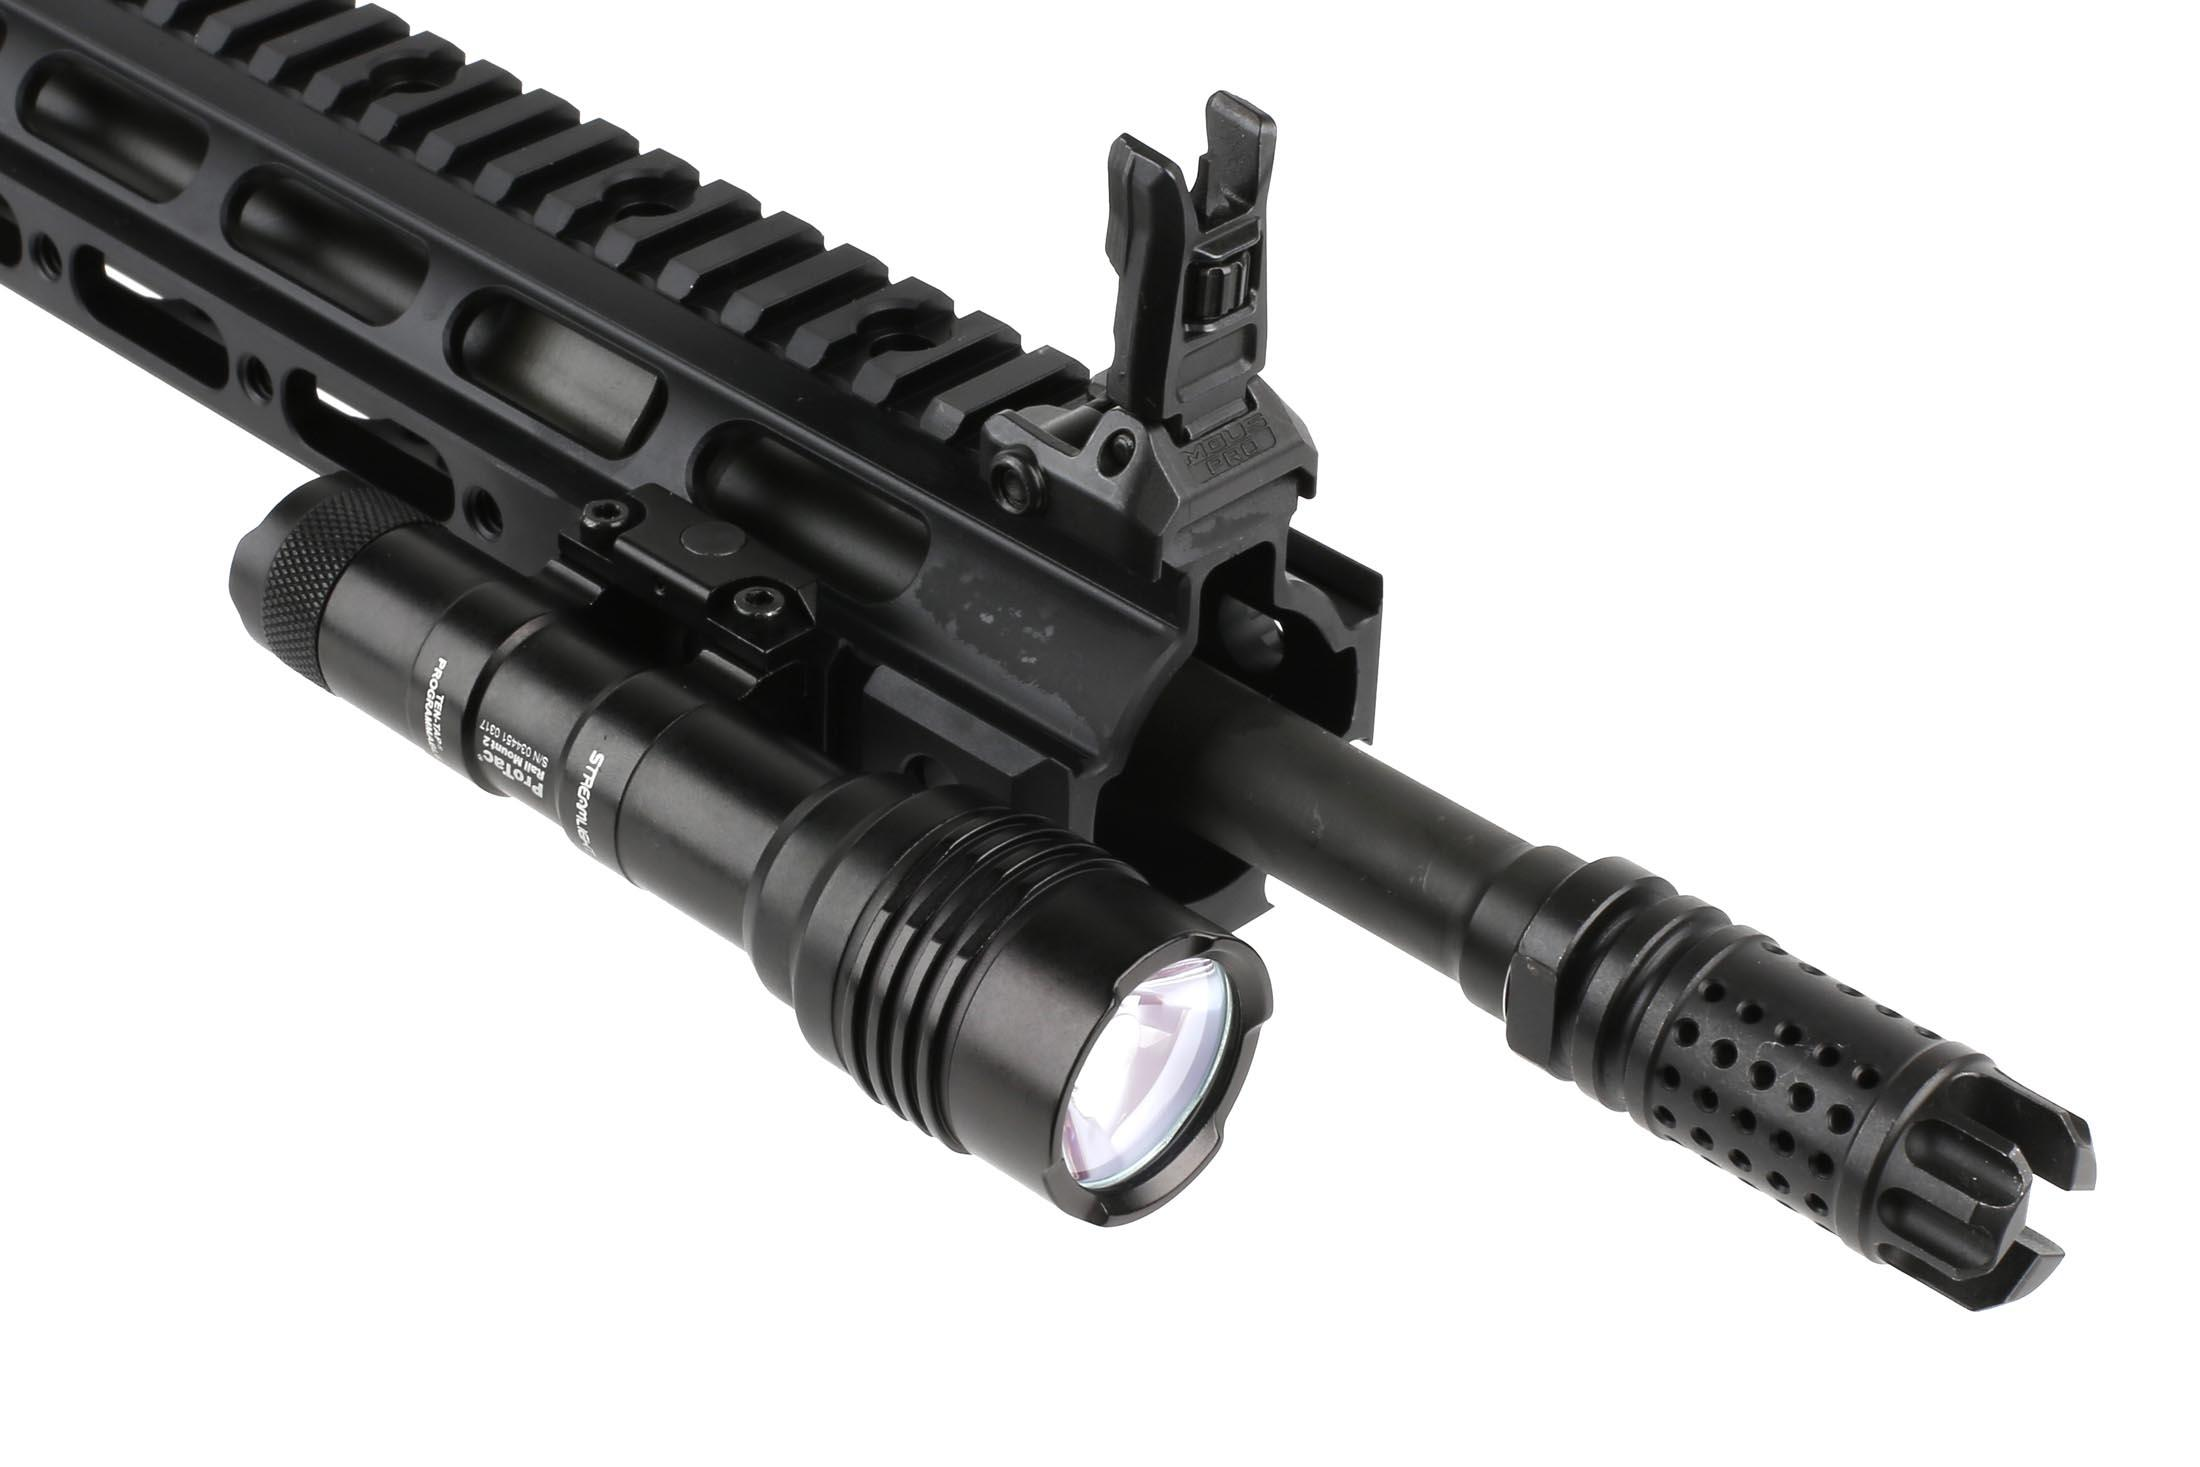 The Streamlight ProTac Rail Mount 2 weapon light comes with a tapeswitch